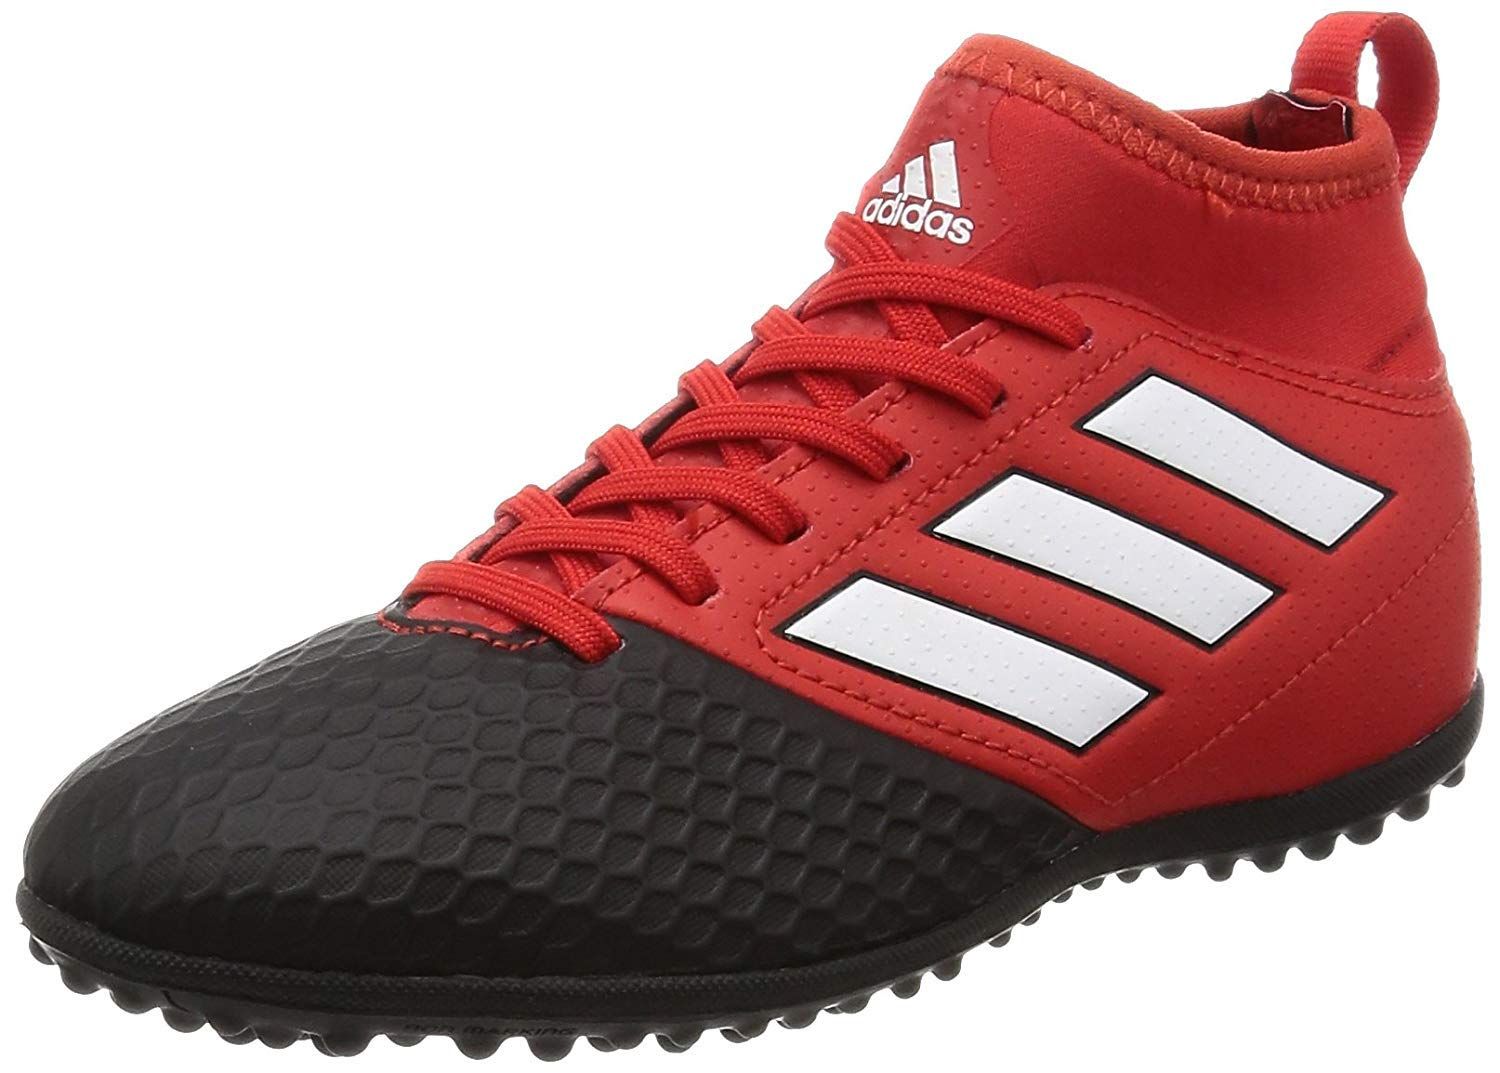 adidas Boys' Ace 17.3 JR Turf Football Boots - Youth - Red/Footwear White/Core Black - US Kids Shoe Size 4.5